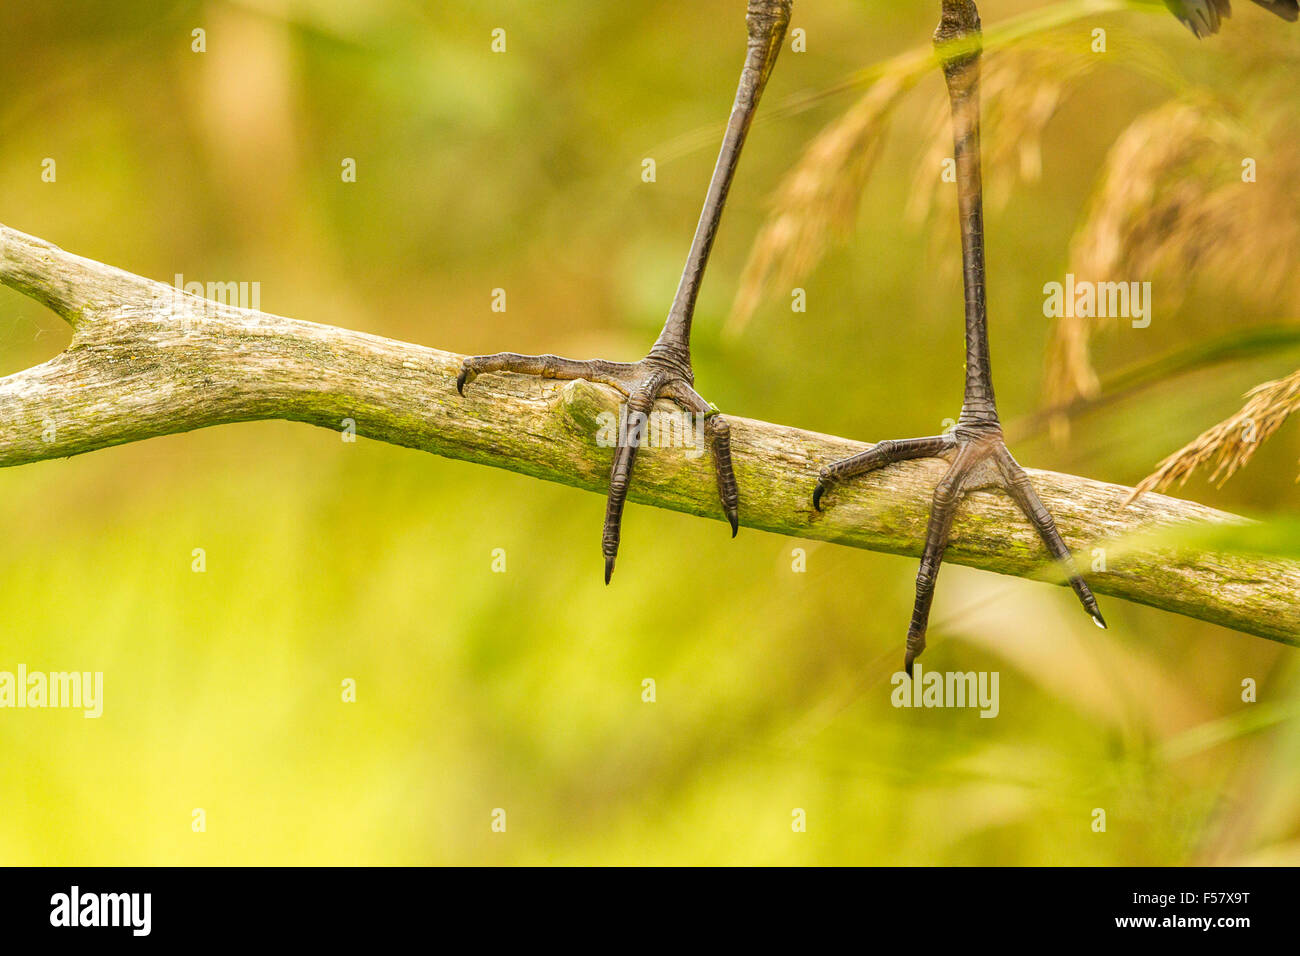 heron's claw on a branch - Stock Image